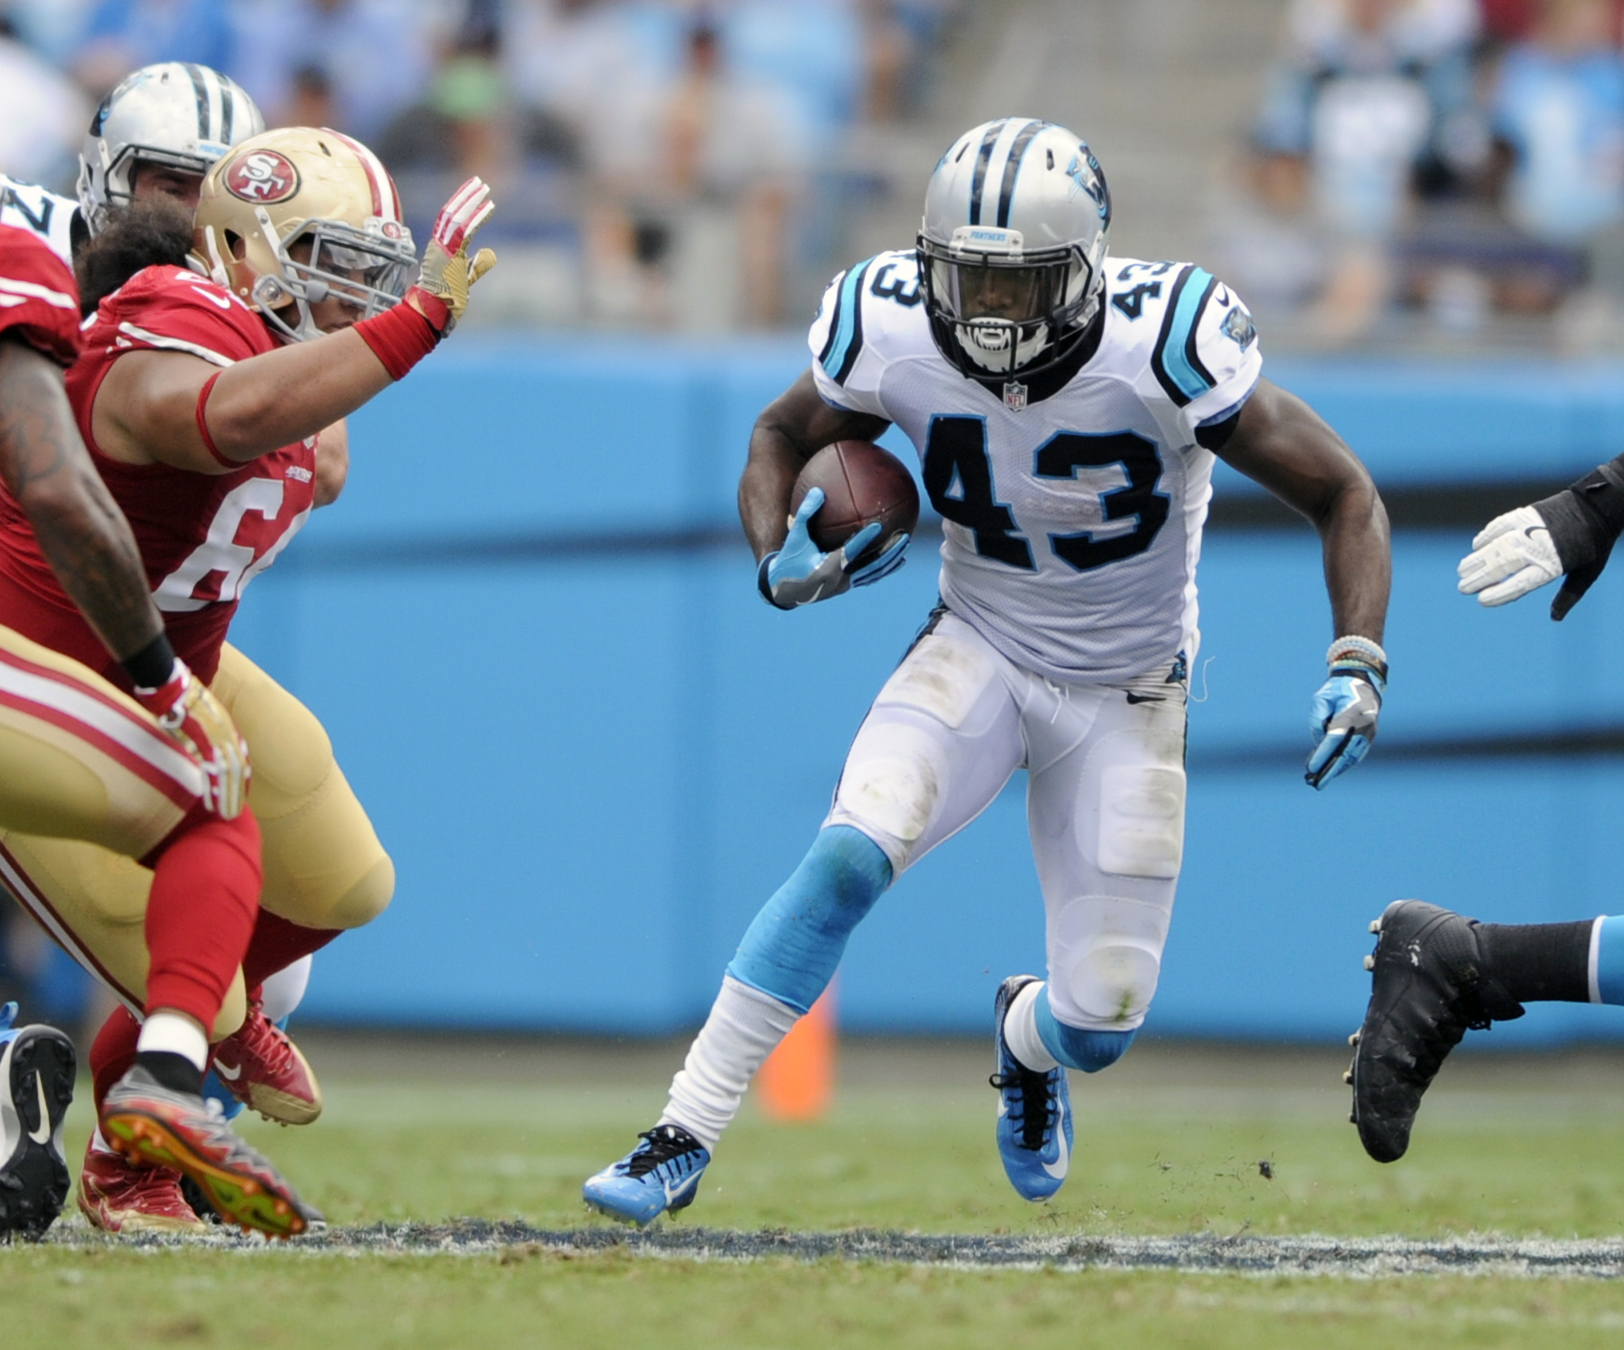 FILE - In this Sept. 18, 2016, file photo, Carolina Panthers' Fozzy Whittaker (43) runs against the San Francisco 49ers in the first quarter of an NFL football game in Charlotte, N.C. The Panthers will have to turn to  Whittaker with Jonathan Stewart out